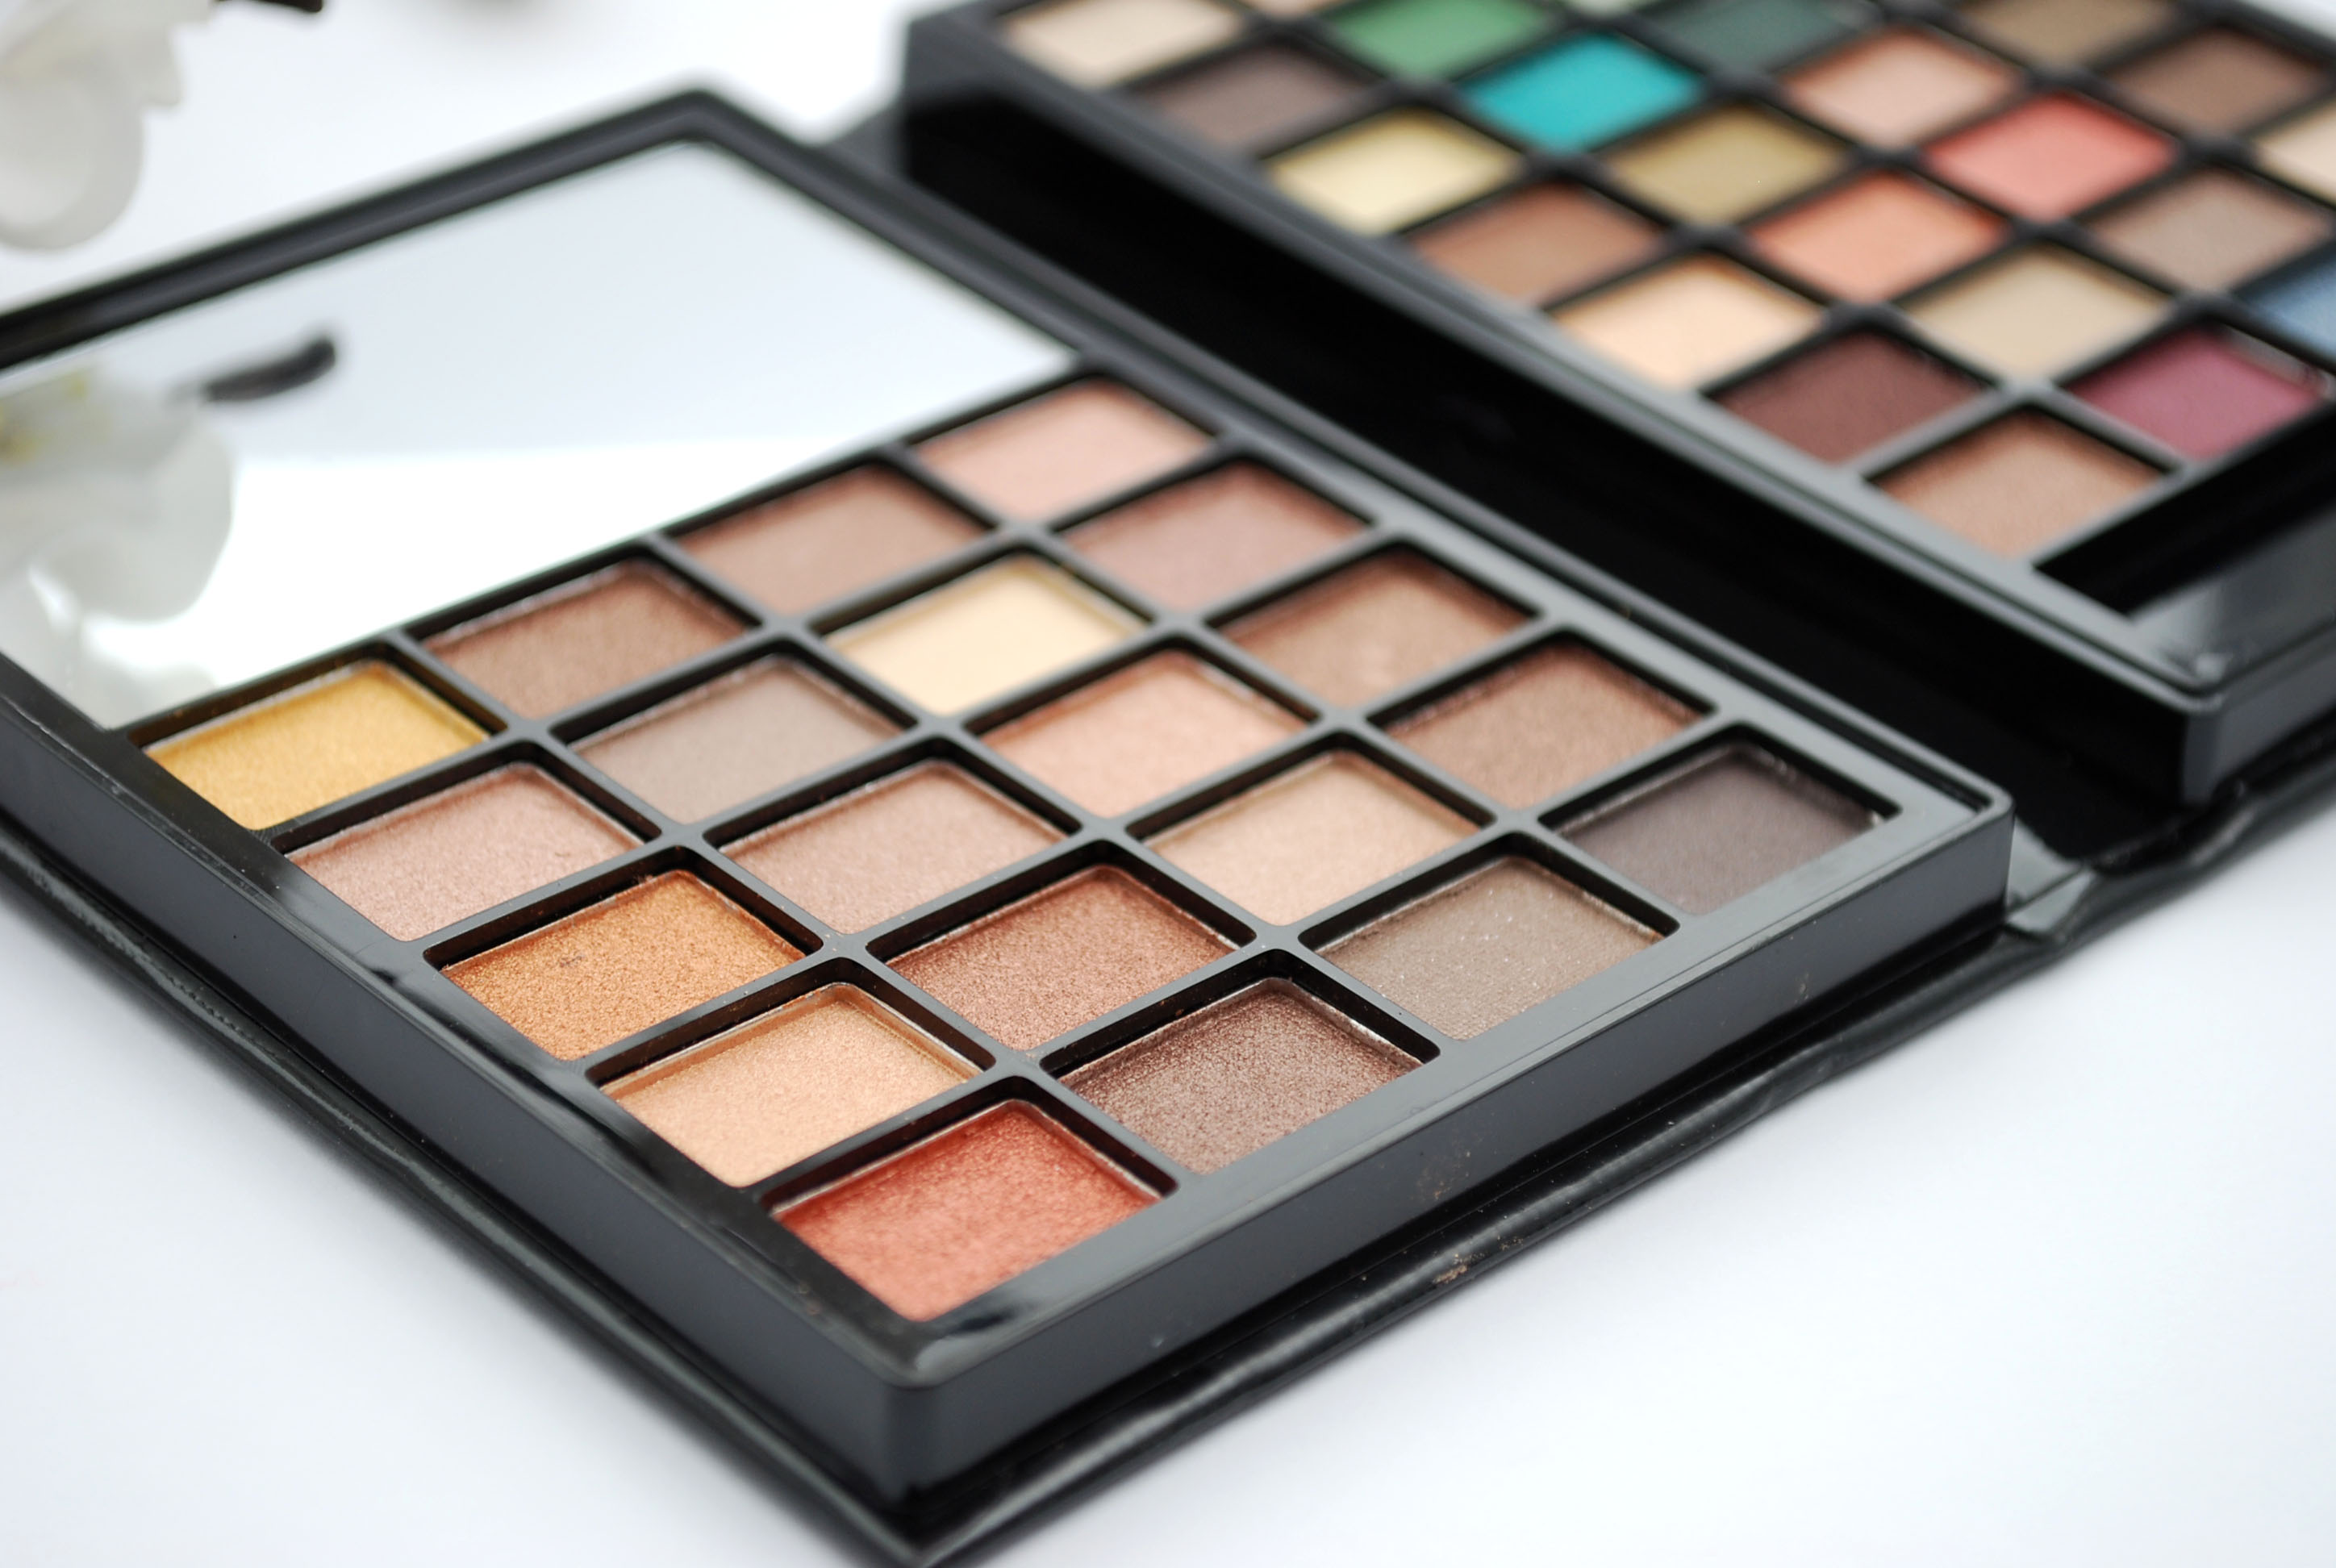 ELF beautybook warm palette review